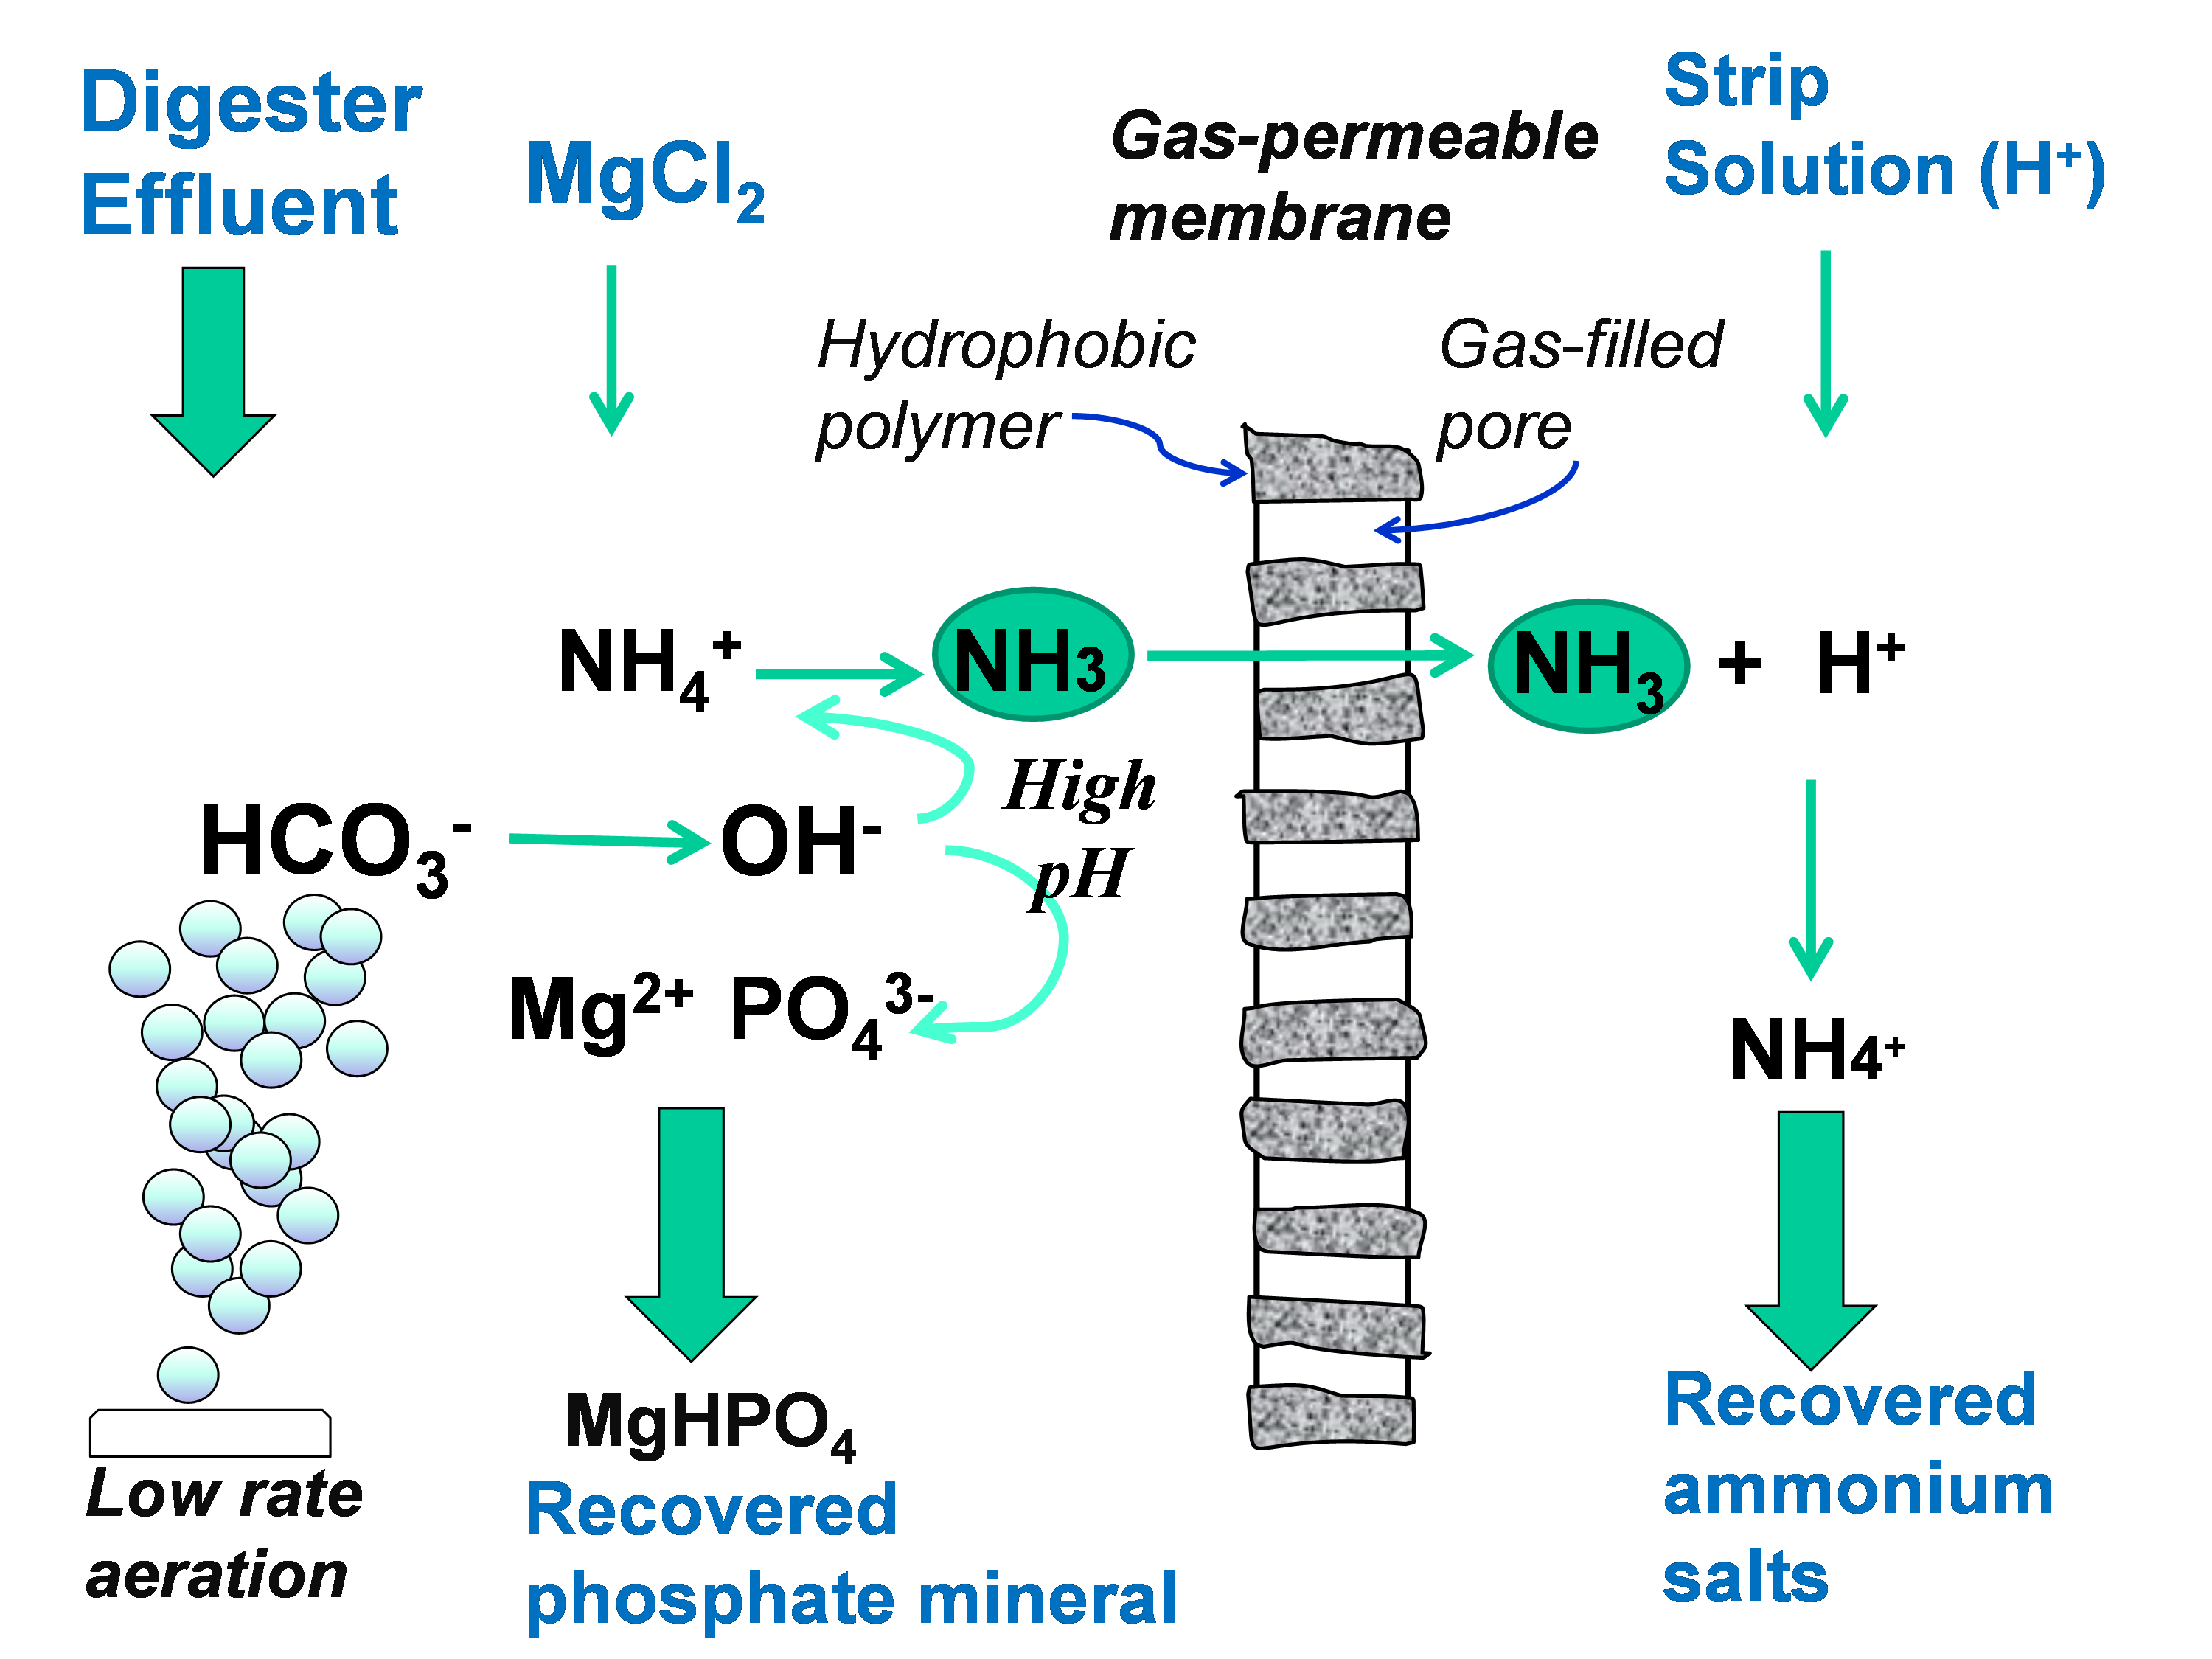 Graphic of gas-permeable membrane